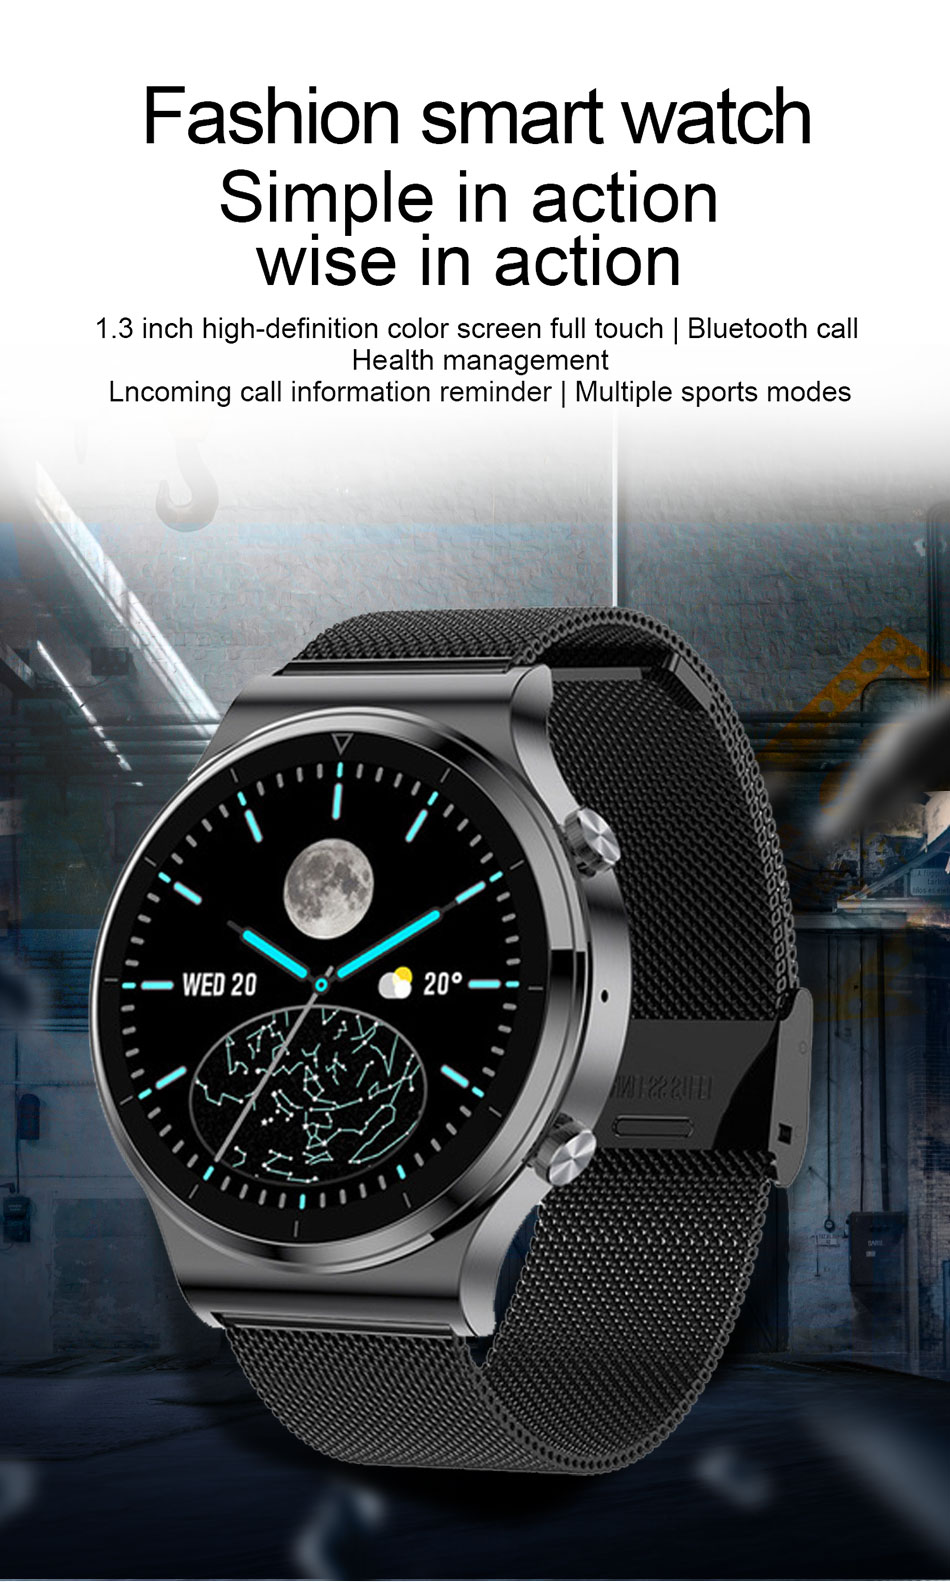 Hb326f06df11a48ffa1926baead7497abu - LIGE New Smart watch Men Heart rate Blood pressure Full touch screen sports Fitness watch Bluetooth for Android iOS smart watch